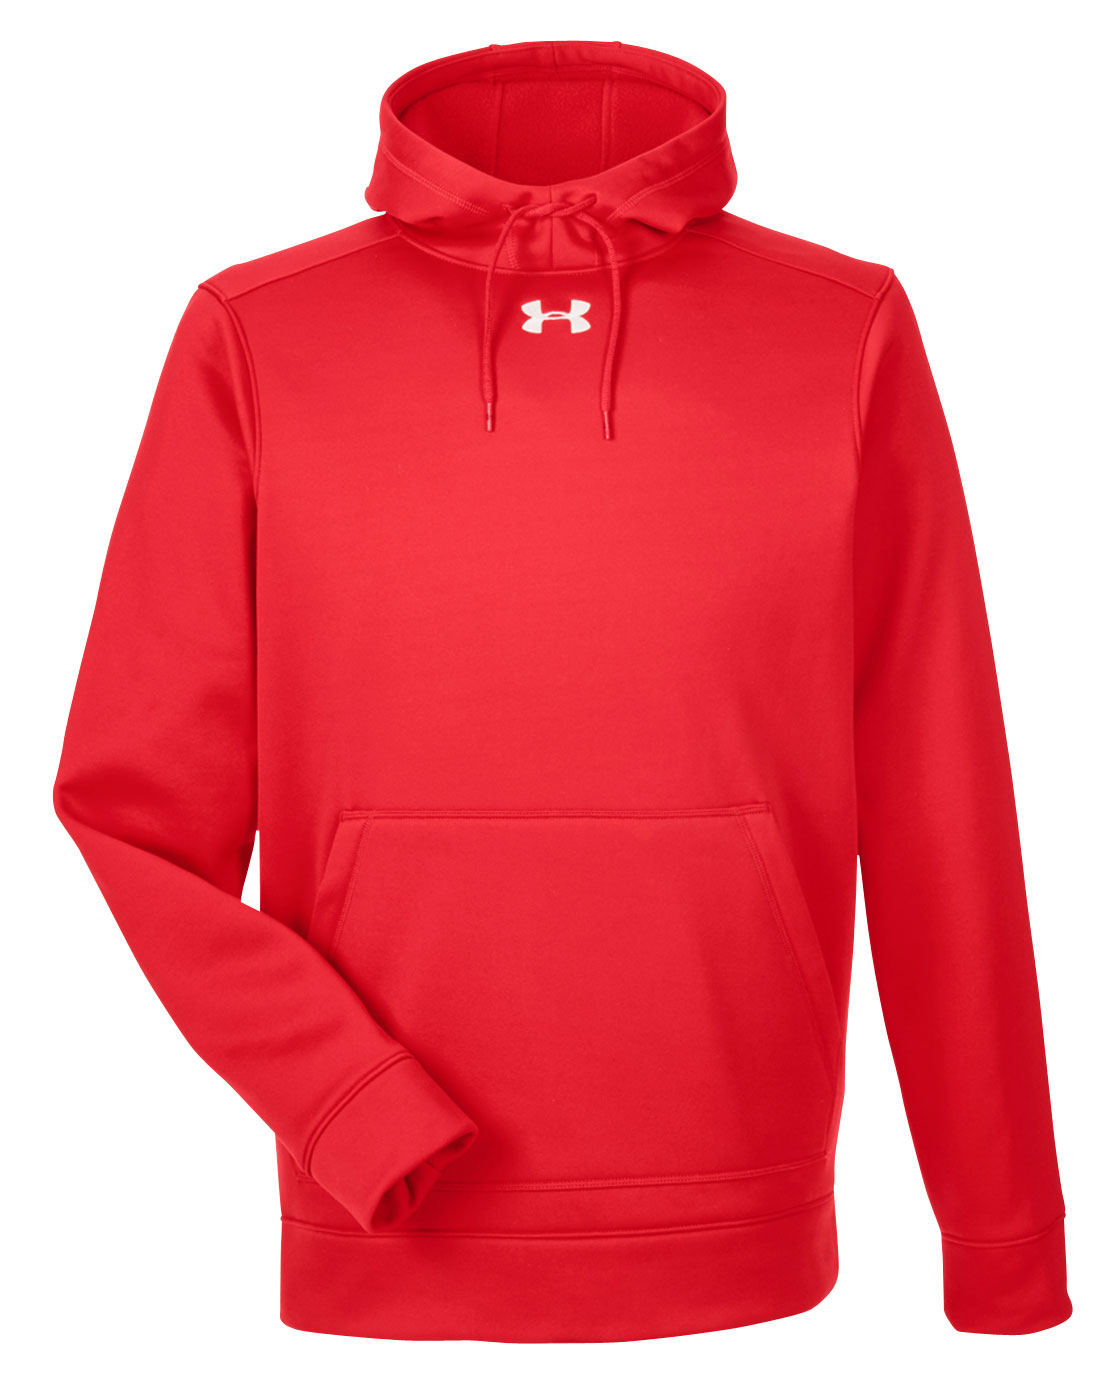 Custom under armour hoodies